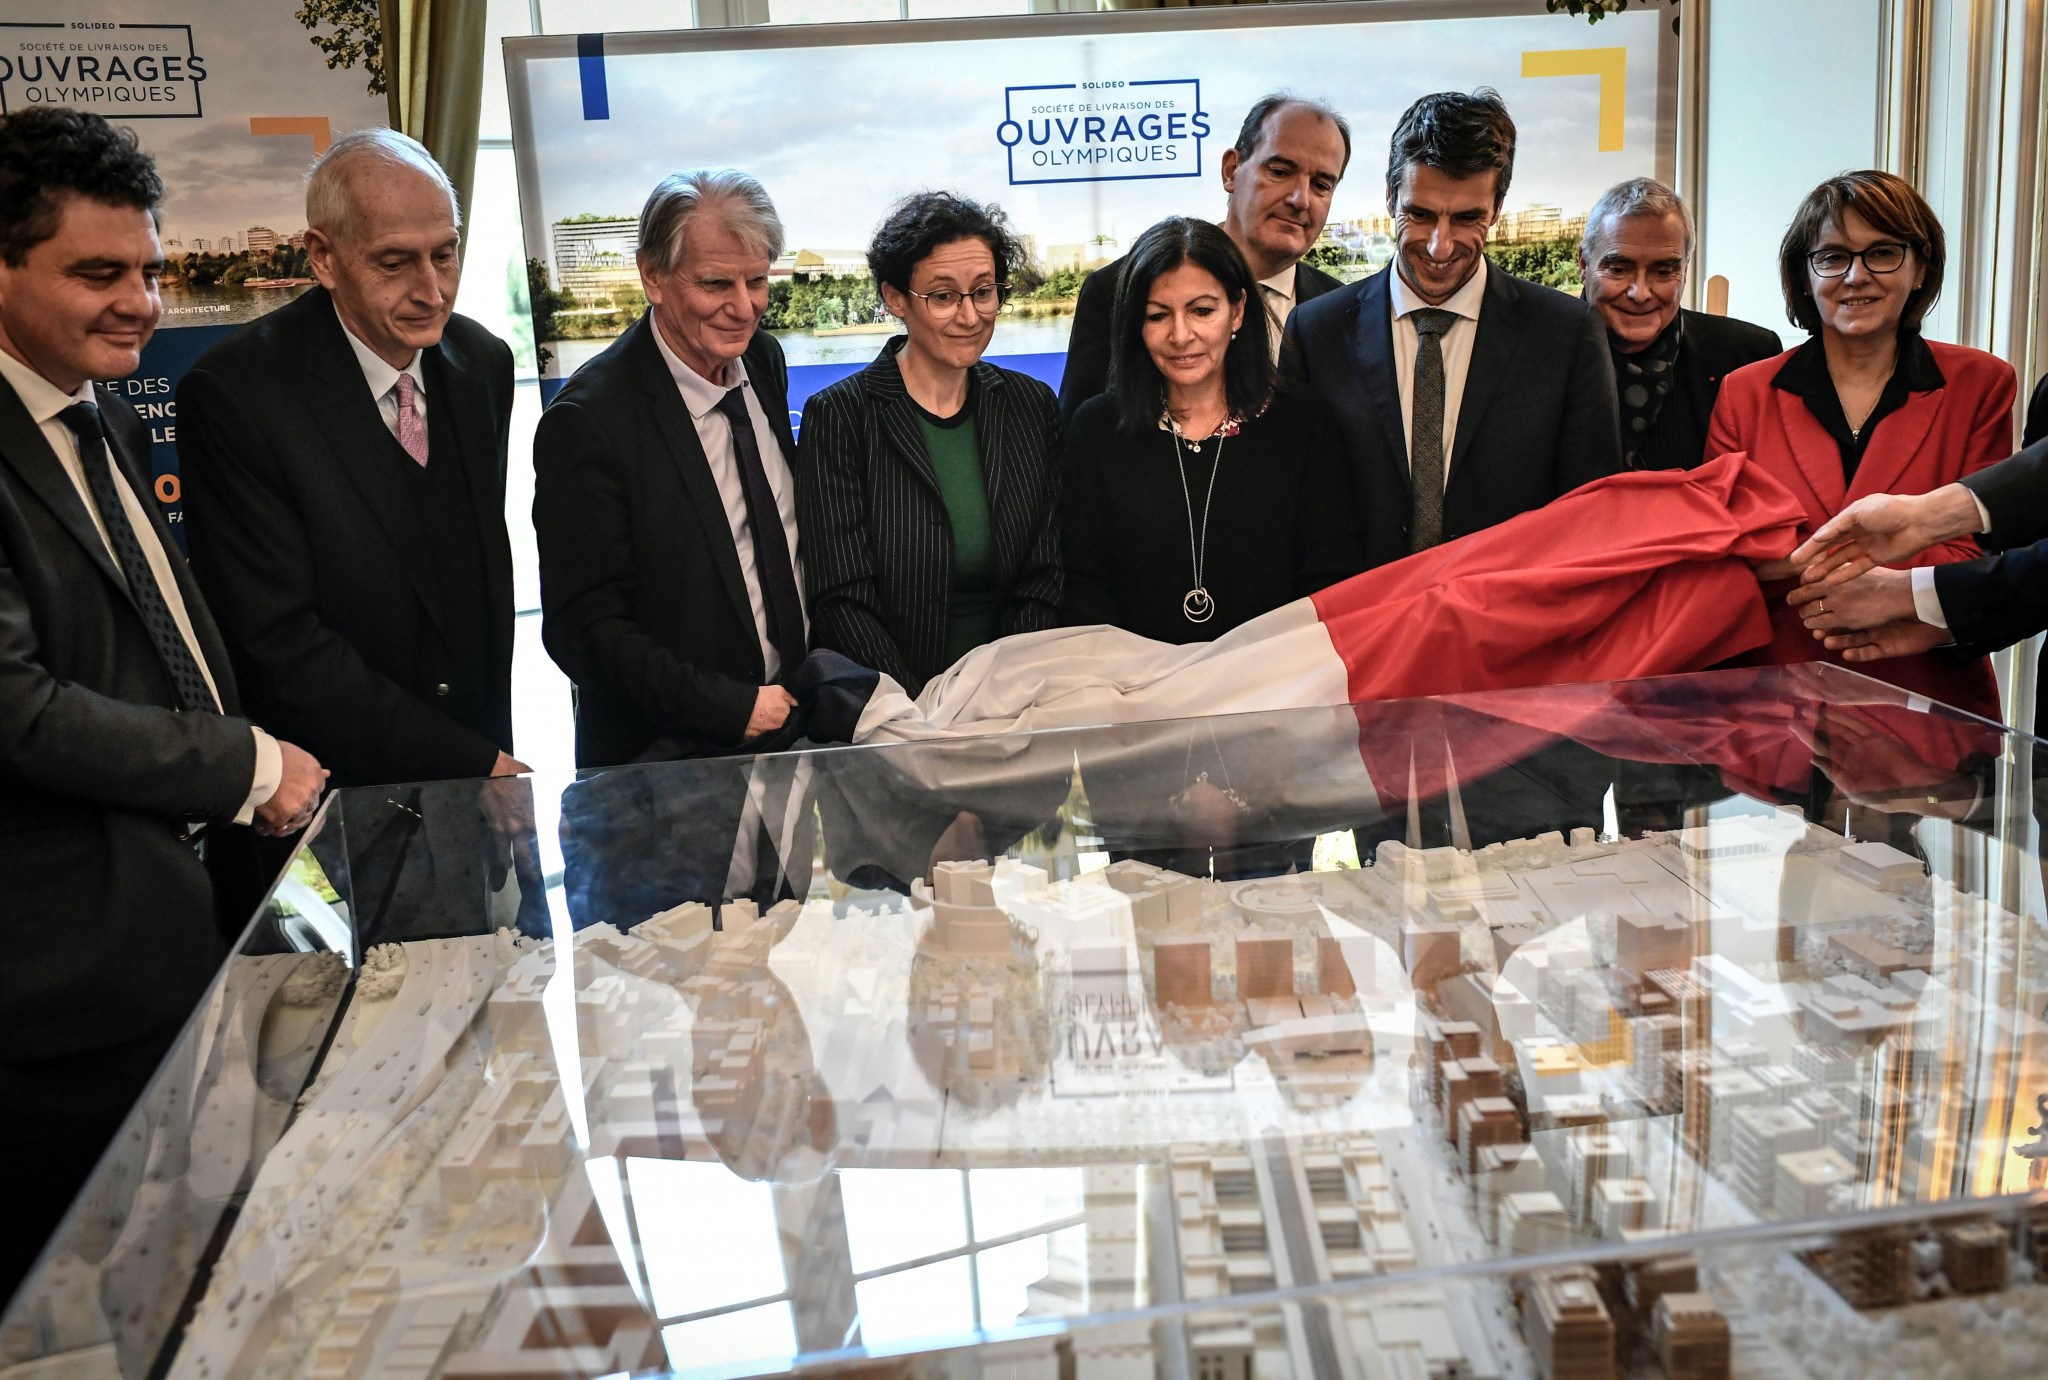 Michel Cadot, second left, looks at a model of the Paris 2024 Olympic Village in a group including Paris Mayor Anne Hidalgo, centre, Jean Castex, fourth from right, and Paris 2024 President Tony Estanguet, third from right ©Getty Images